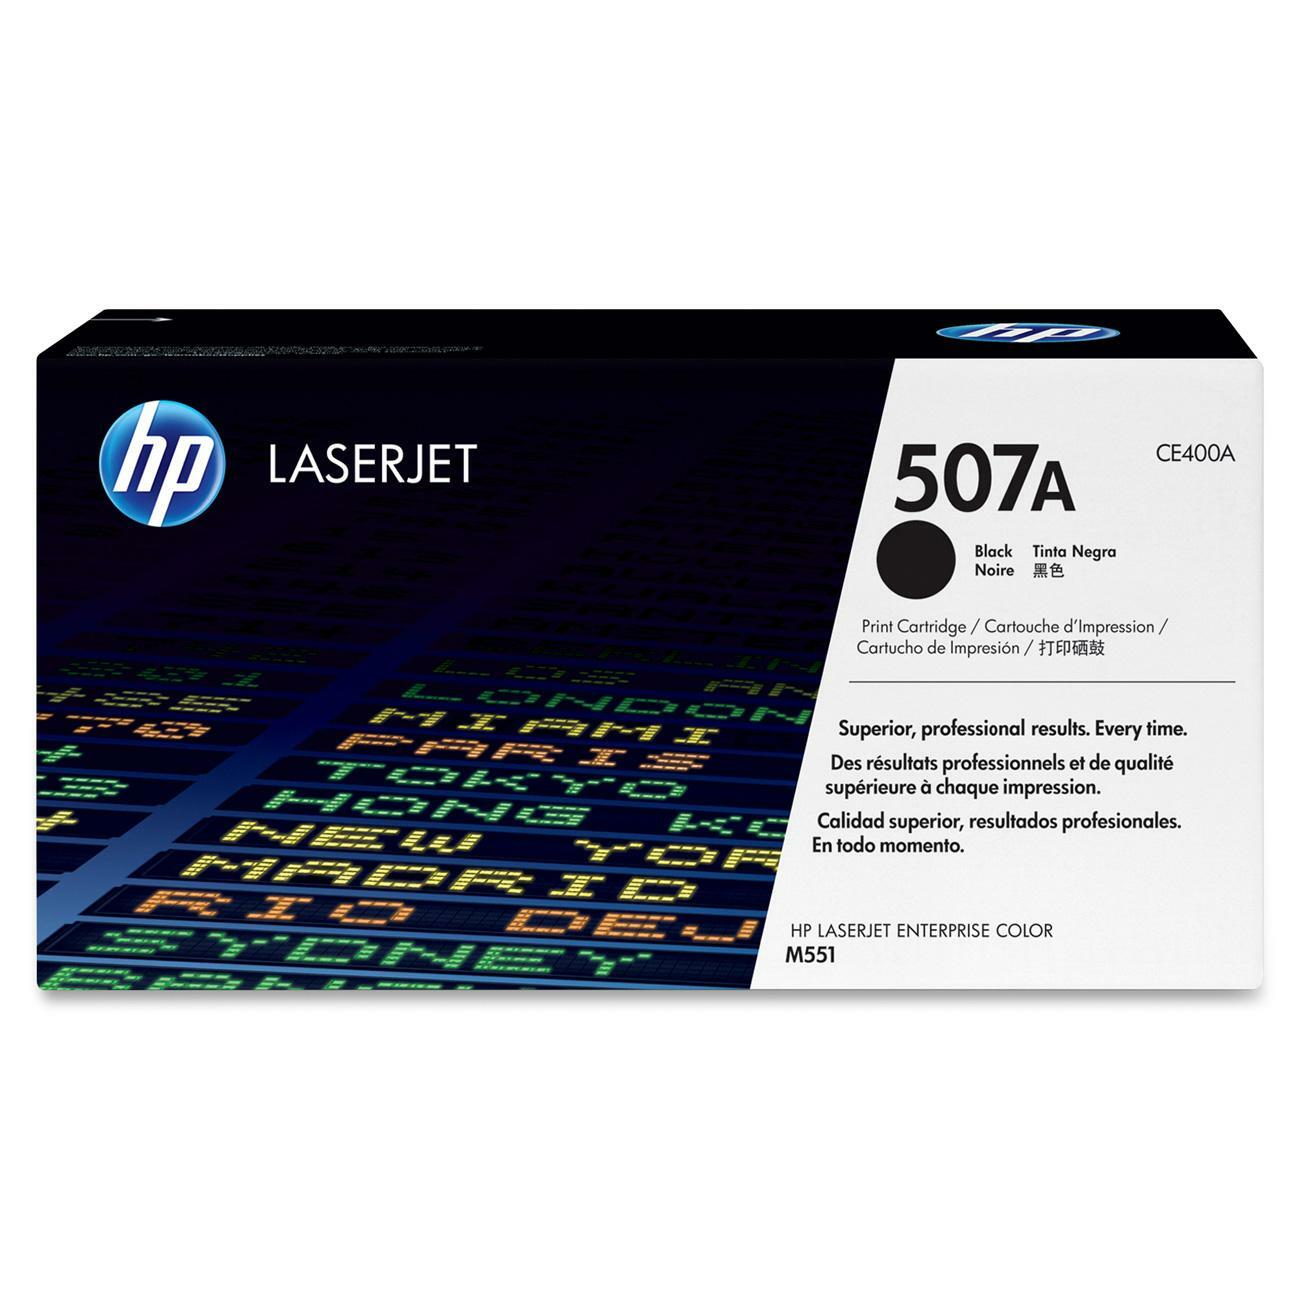 HP 507A Toner Cartridge - Black